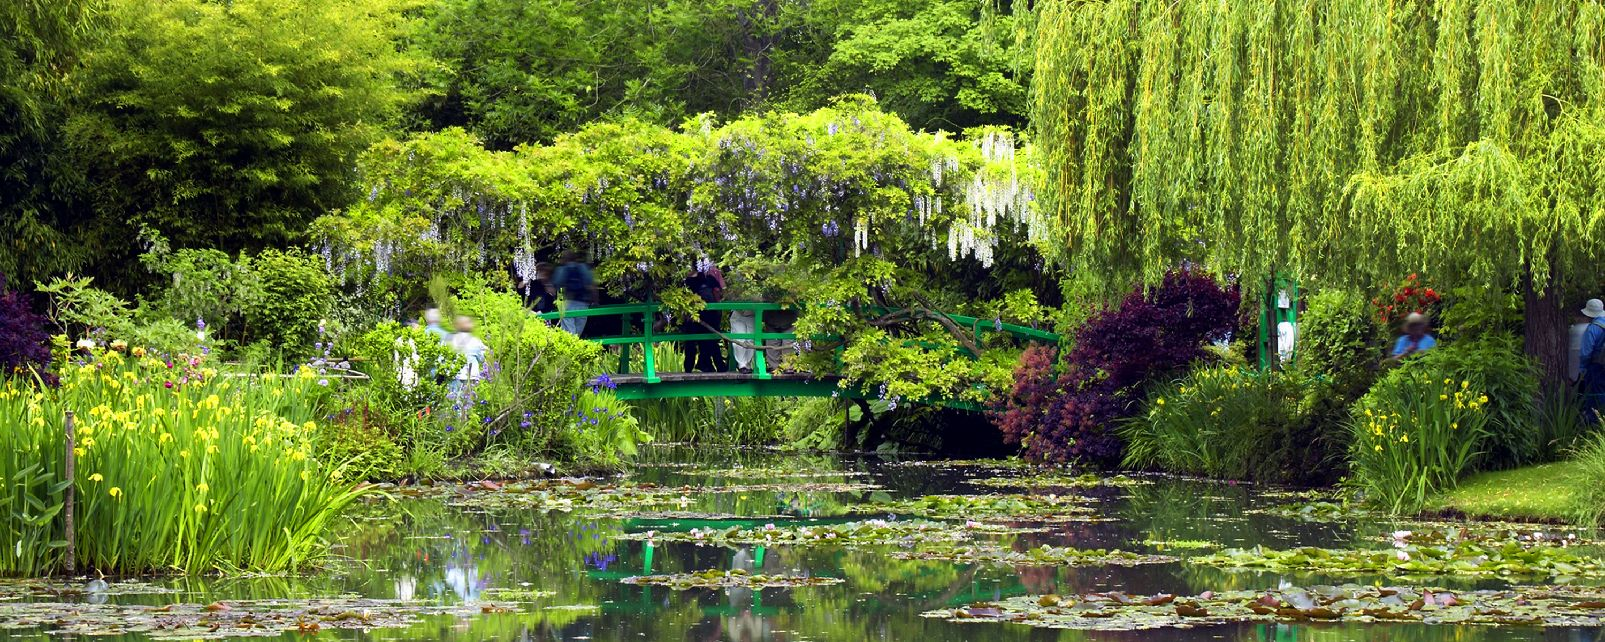 Les jardins de giverny normandie france for Le jardin de france